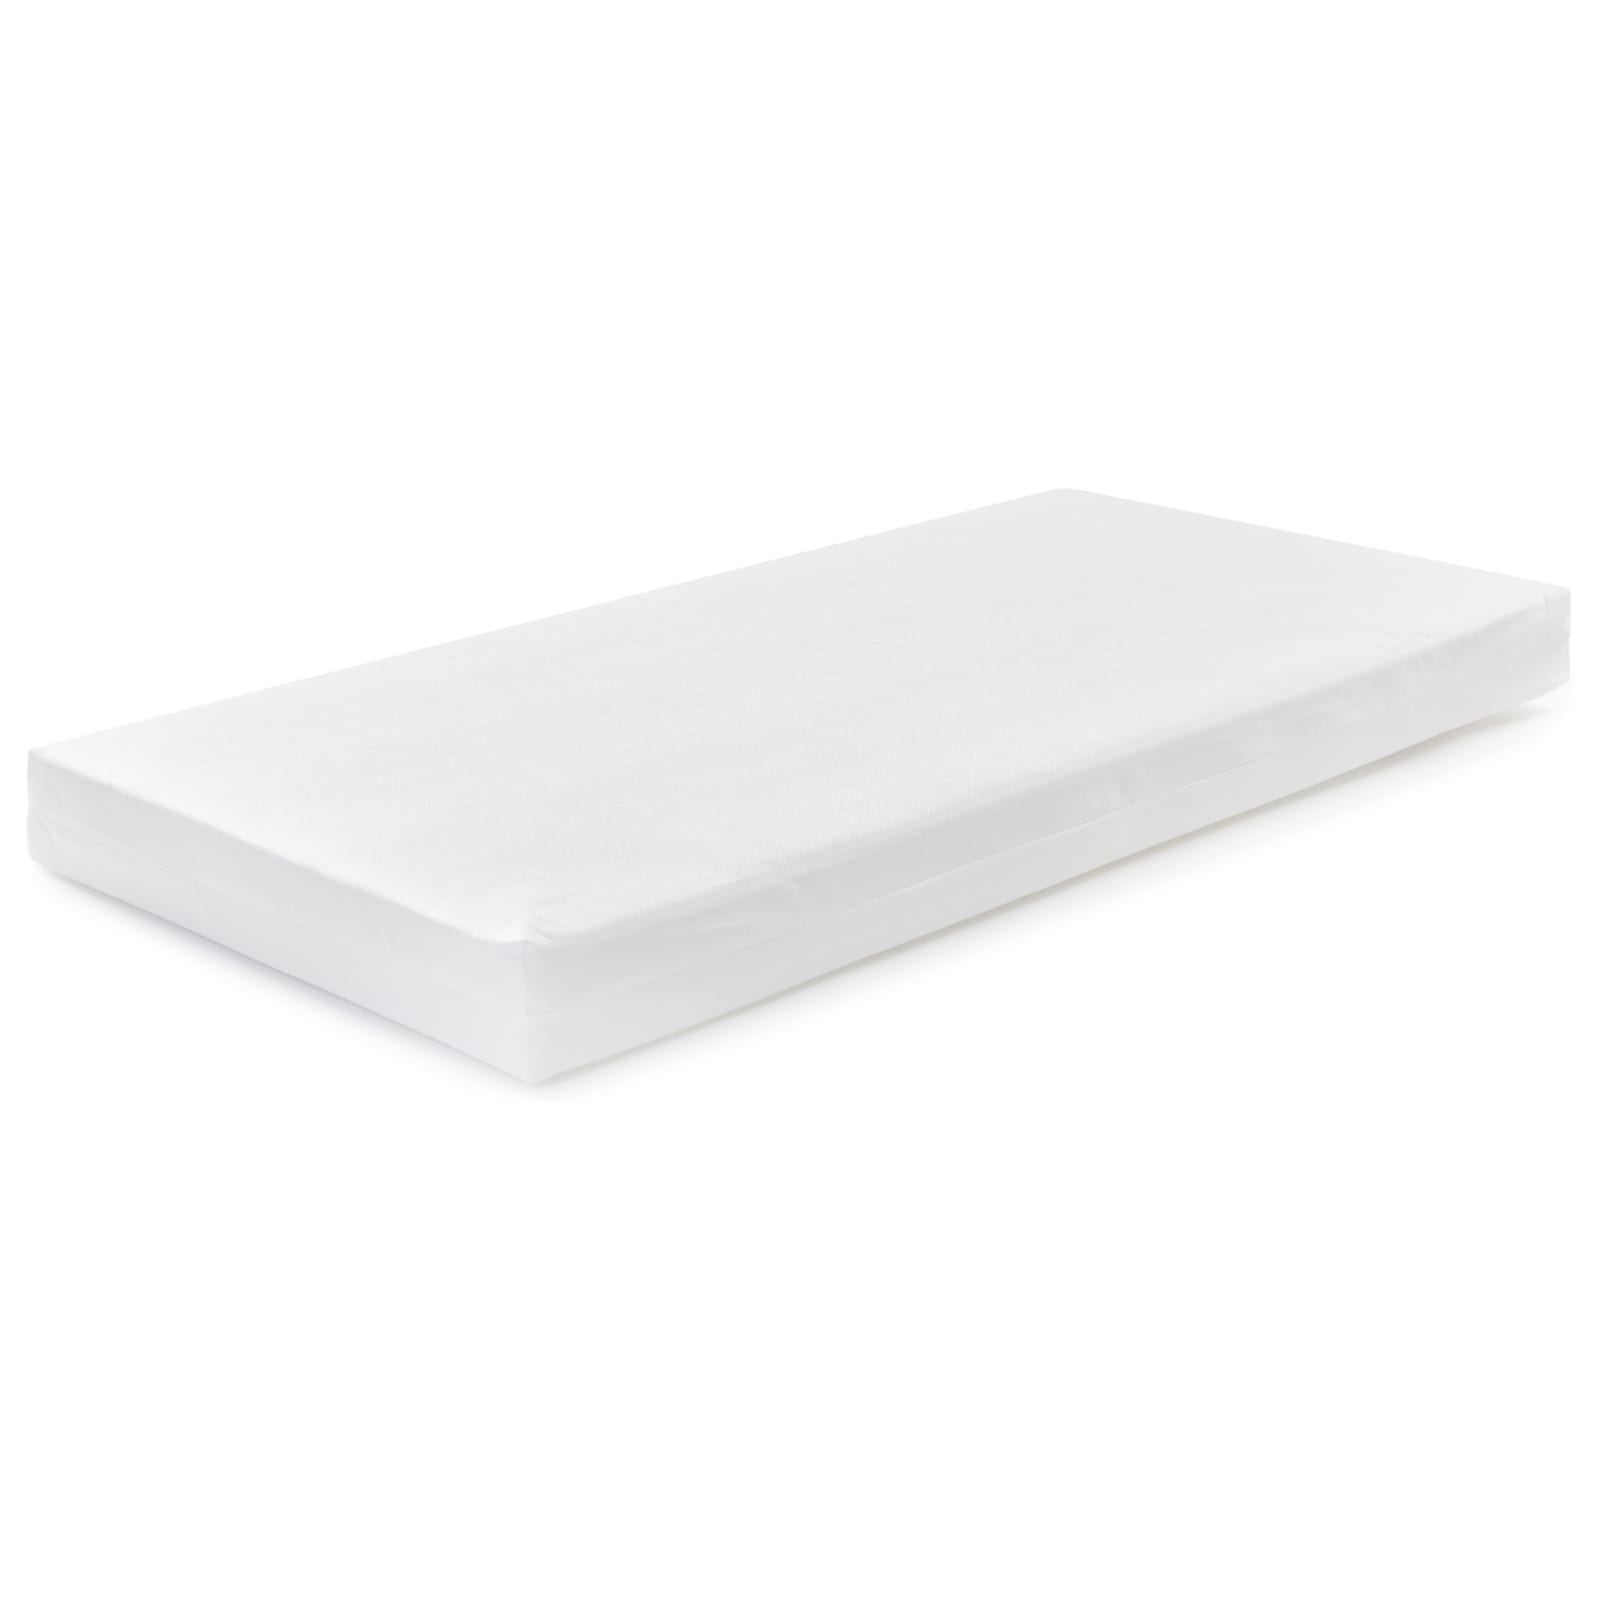 Eco Foam Mattress  –  Cot Bed – 70x140x10cm product image